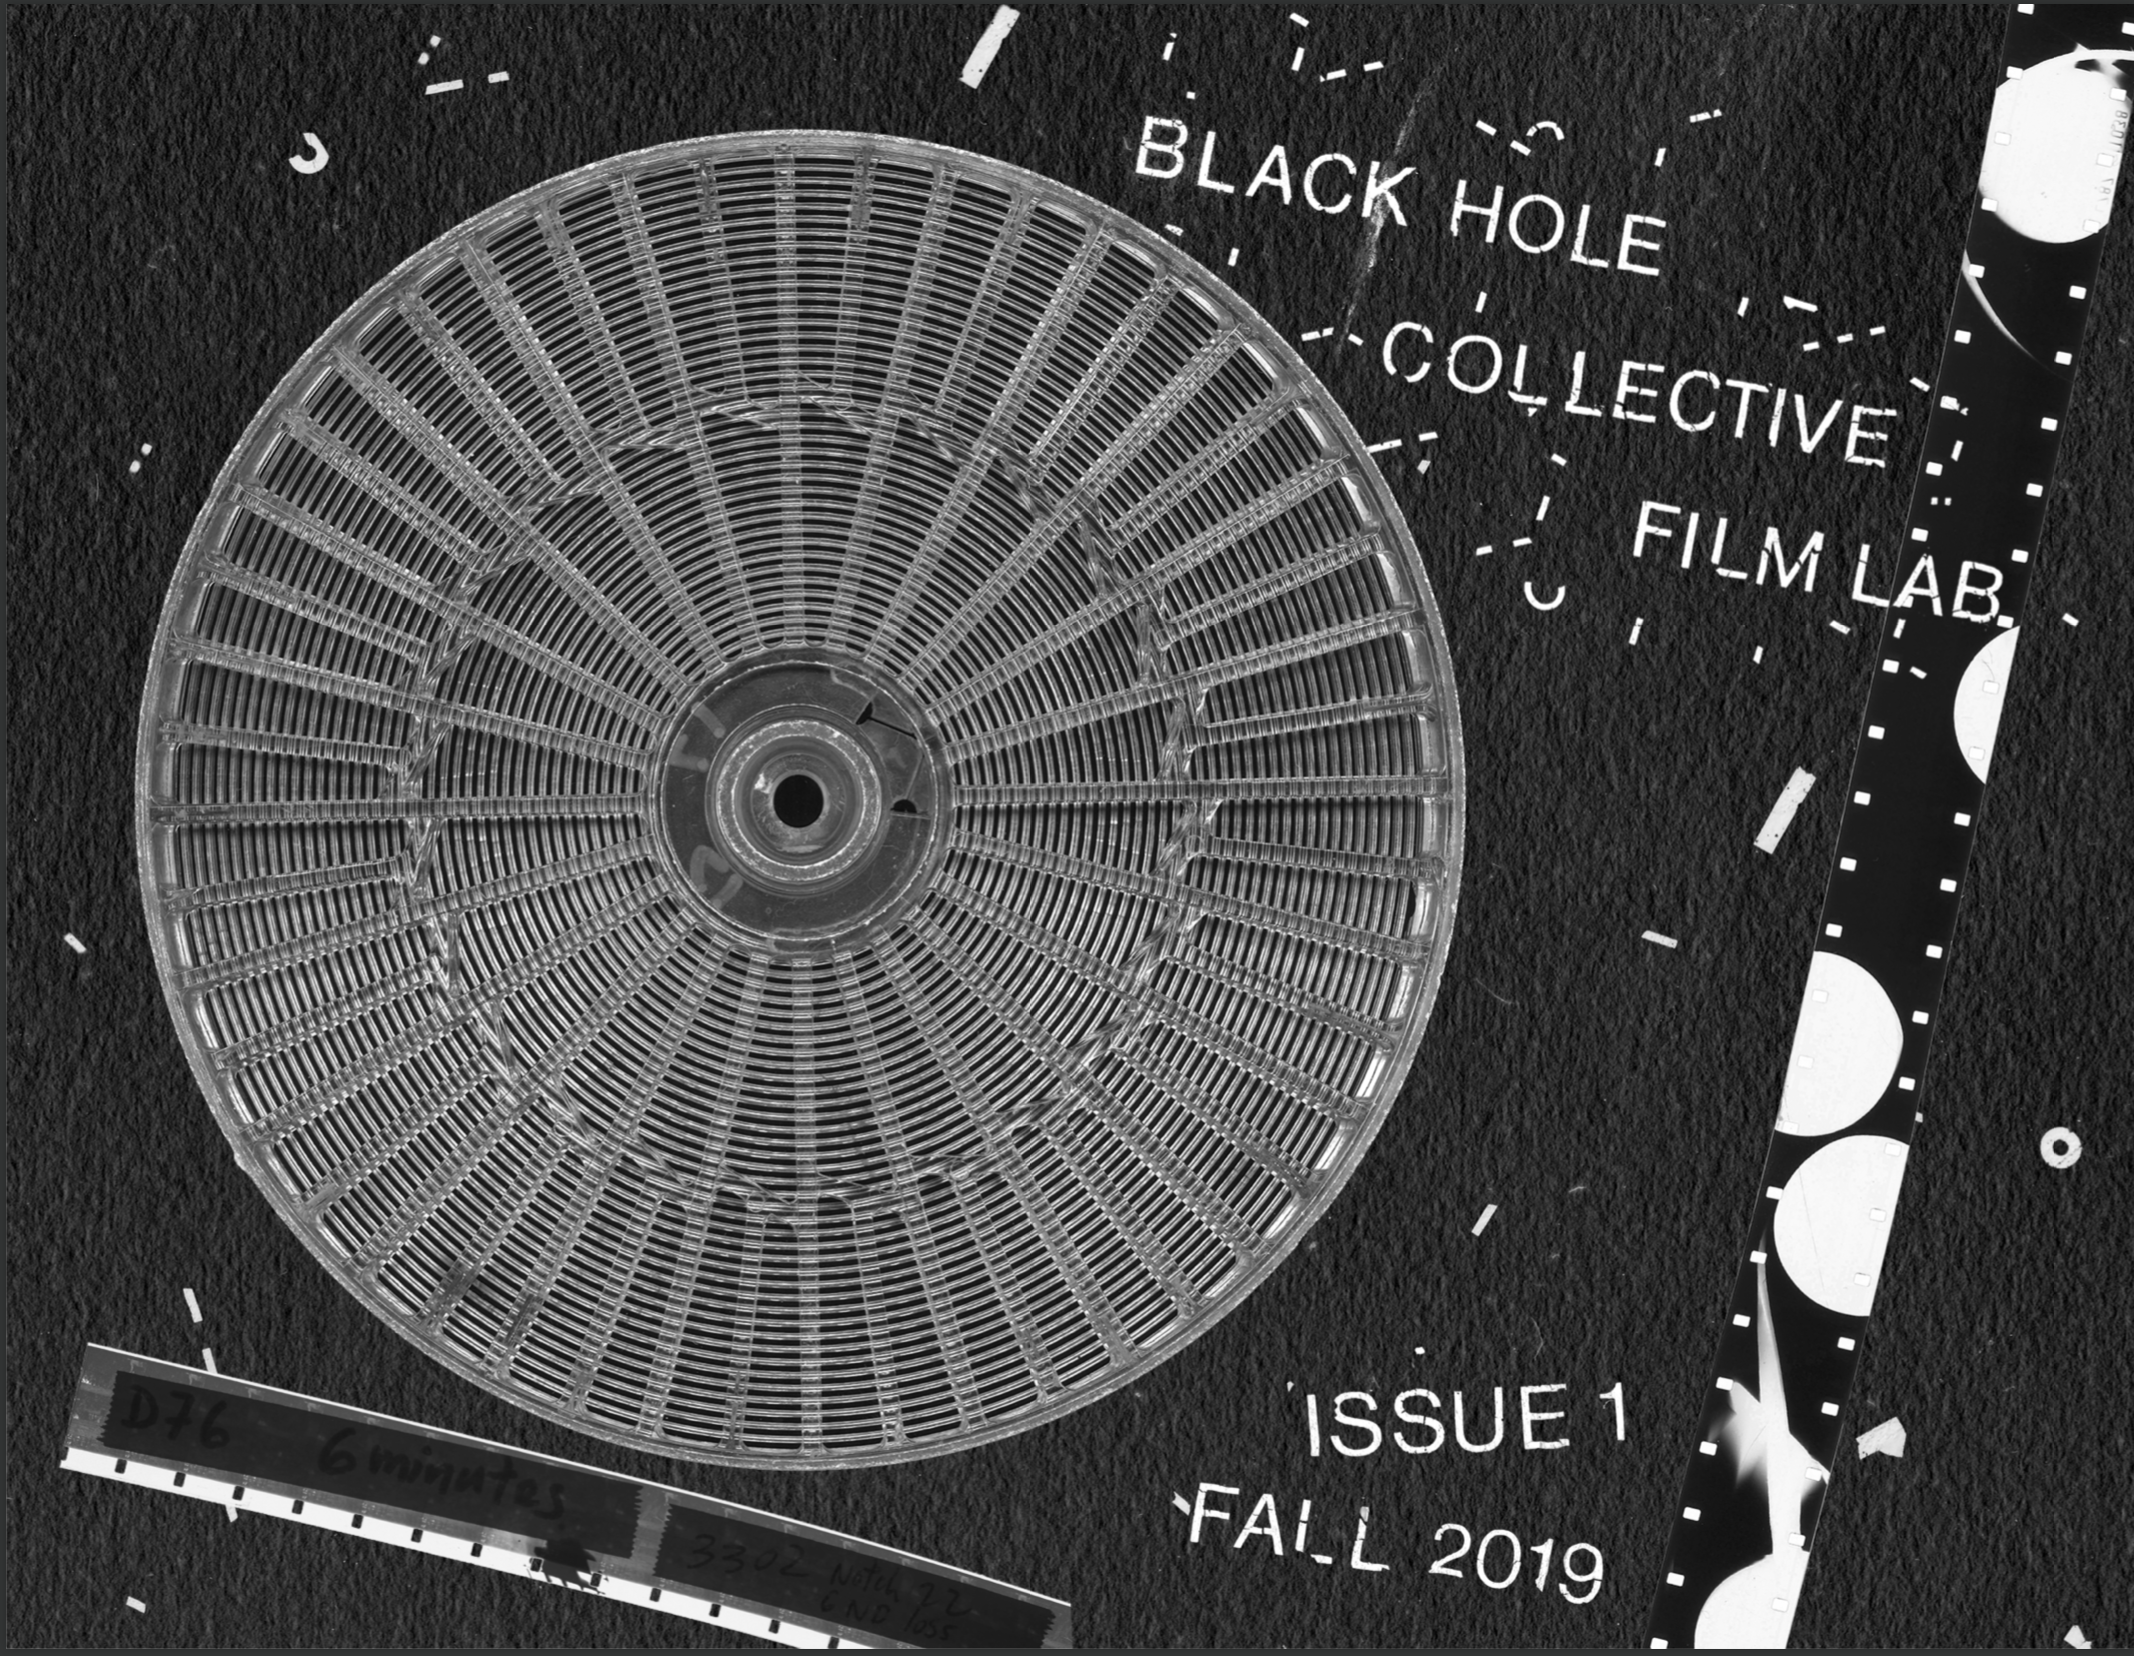 Black Hole Collective Film Lab - Issue 1